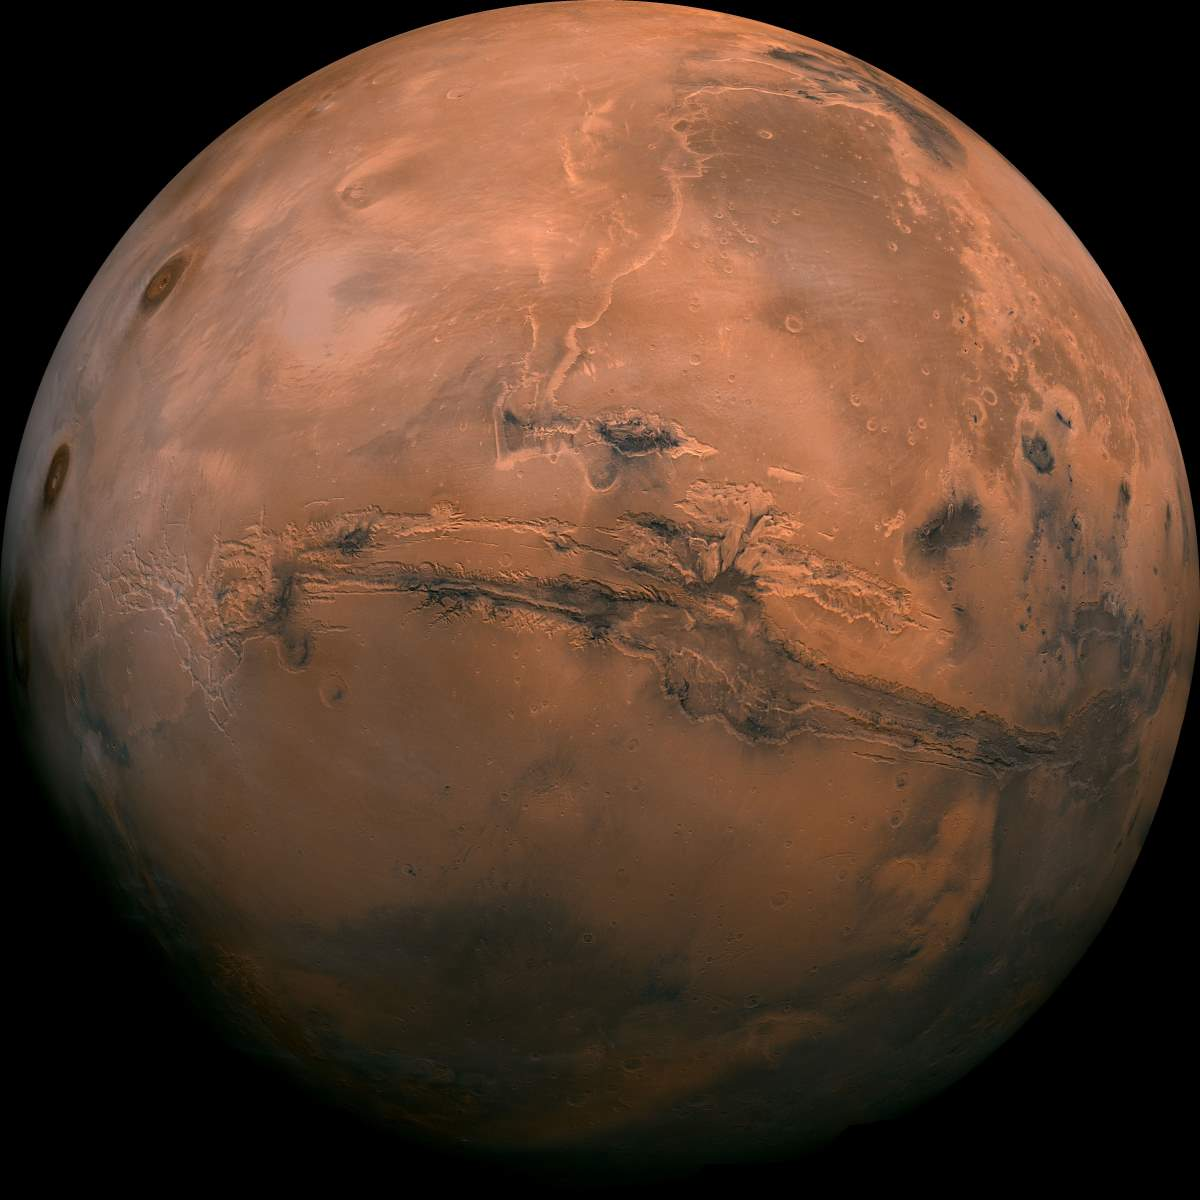 Mars - Valles Marineris Hemisphere Enhanced